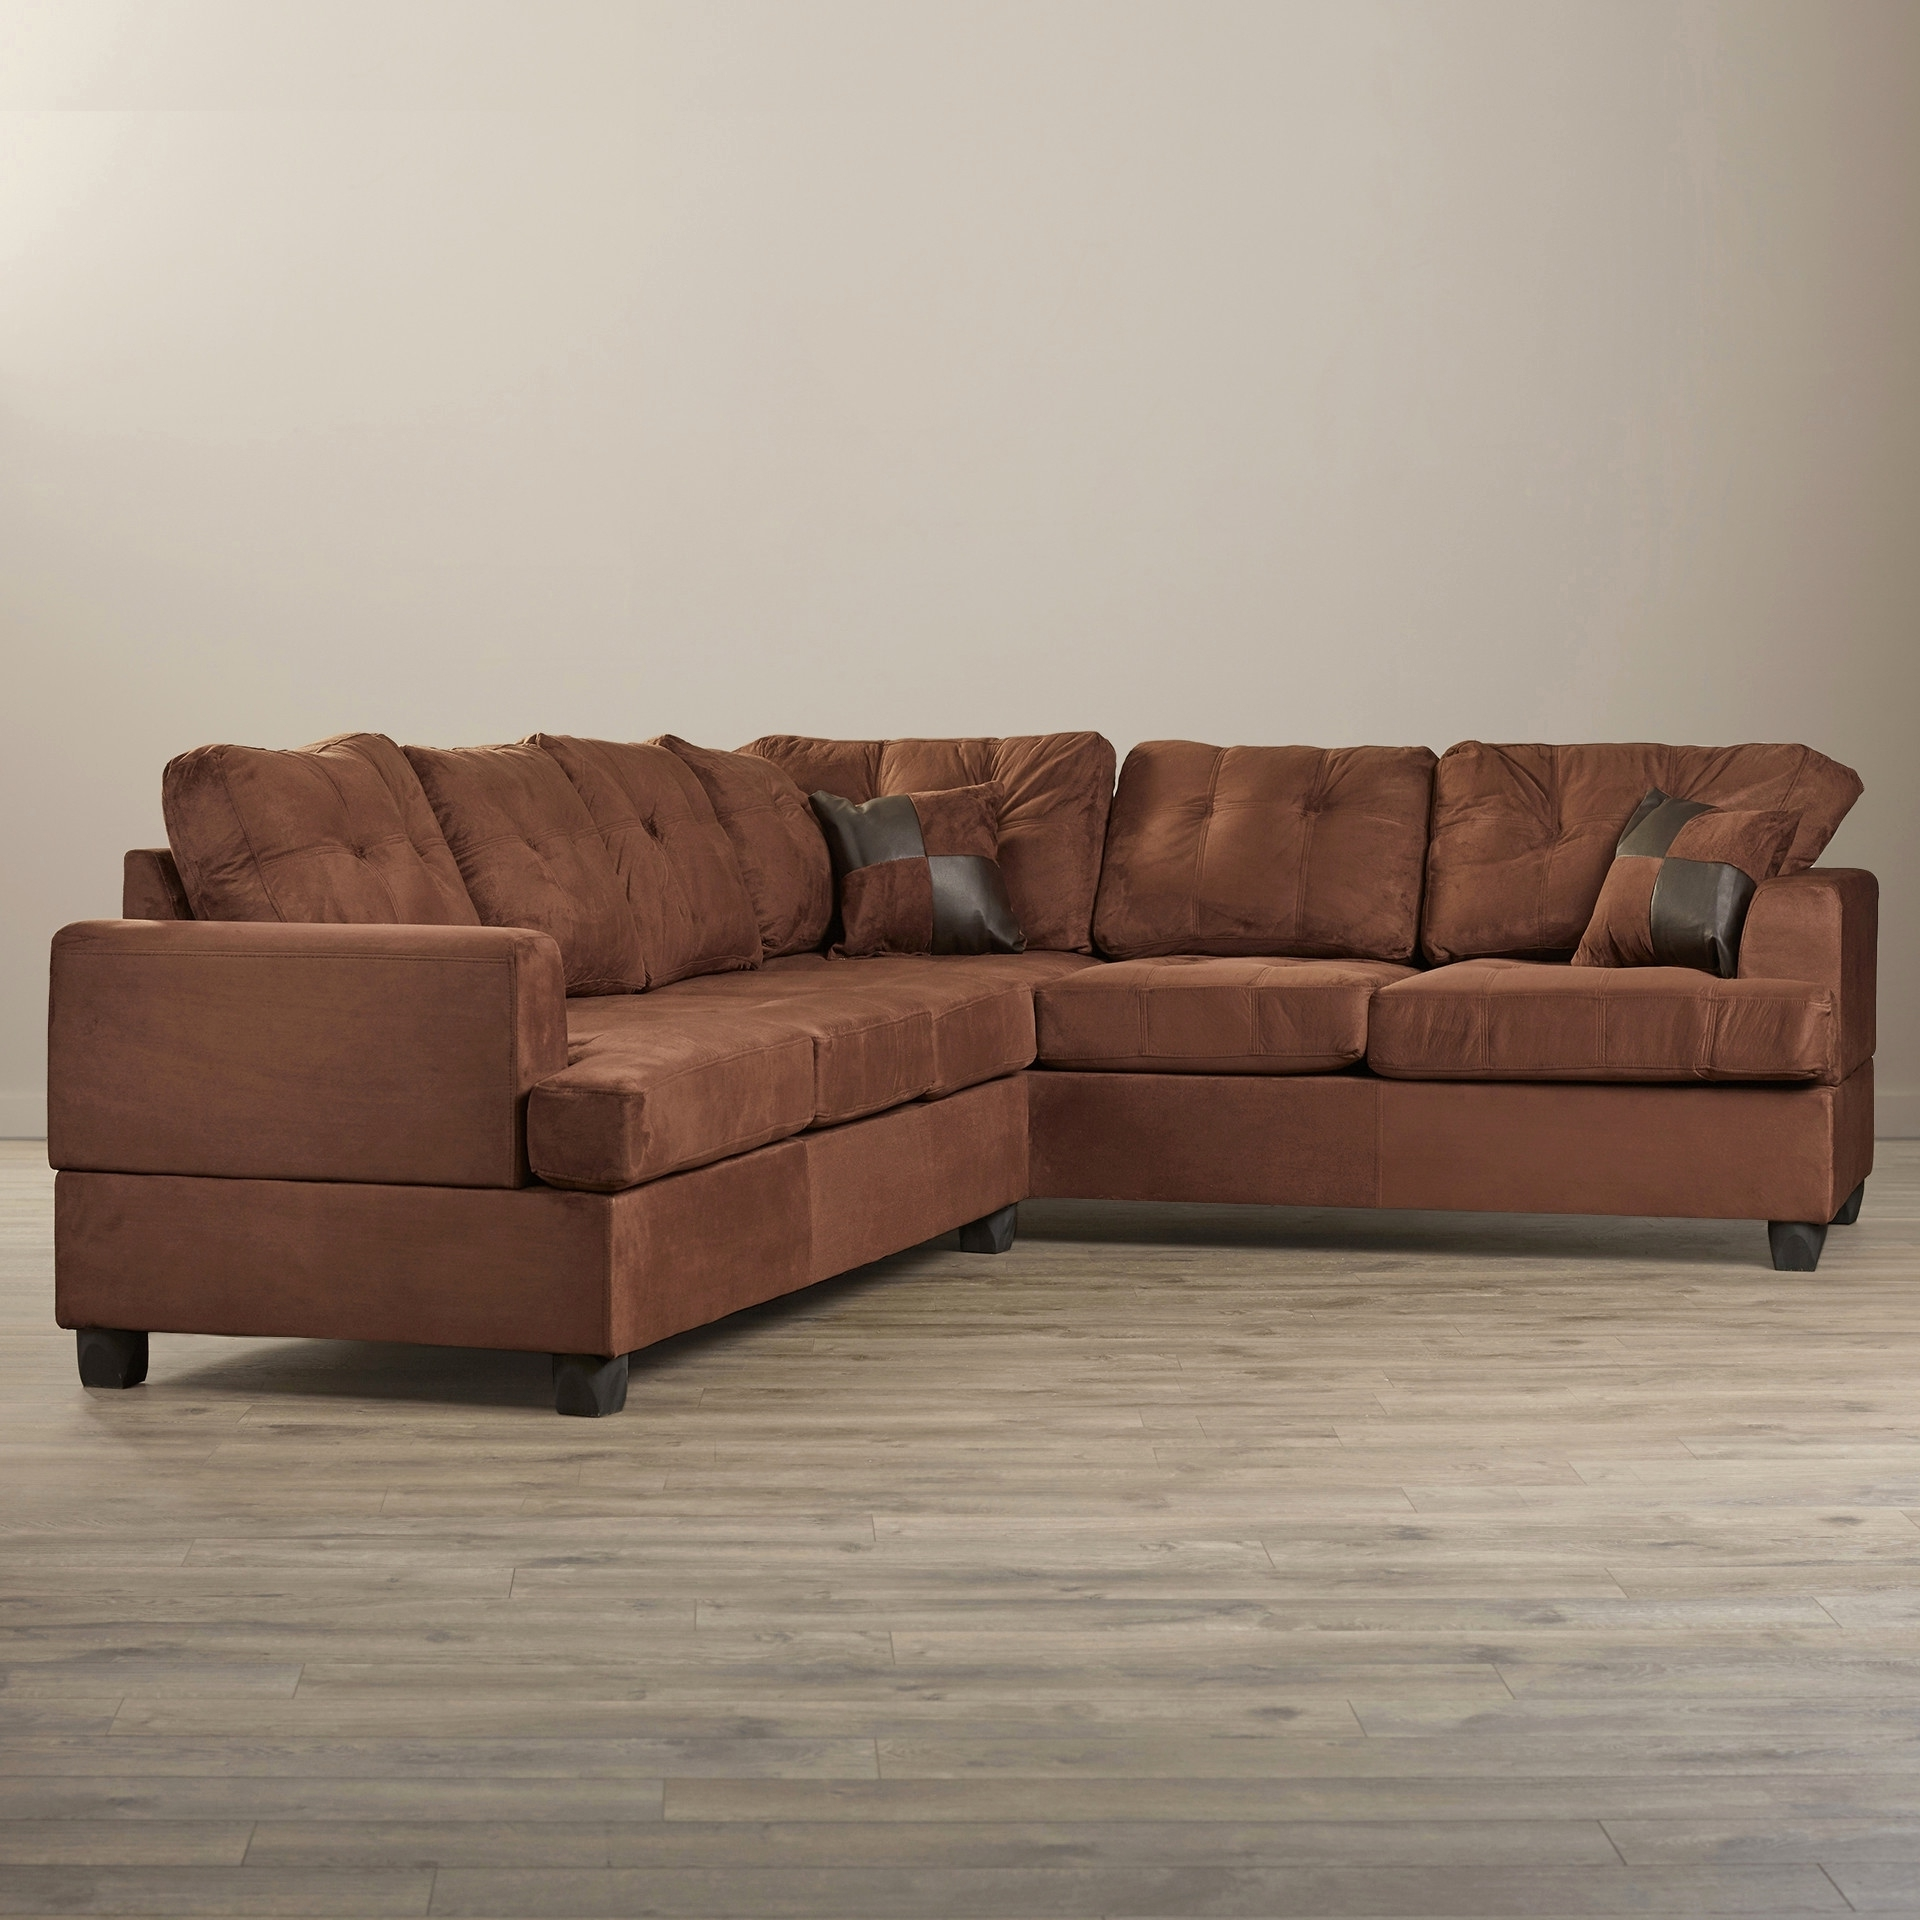 2019 Sears Sofas Within New Cheap Sofa Shops 2018 – Couches And Sofas Ideas (View 17 of 20)